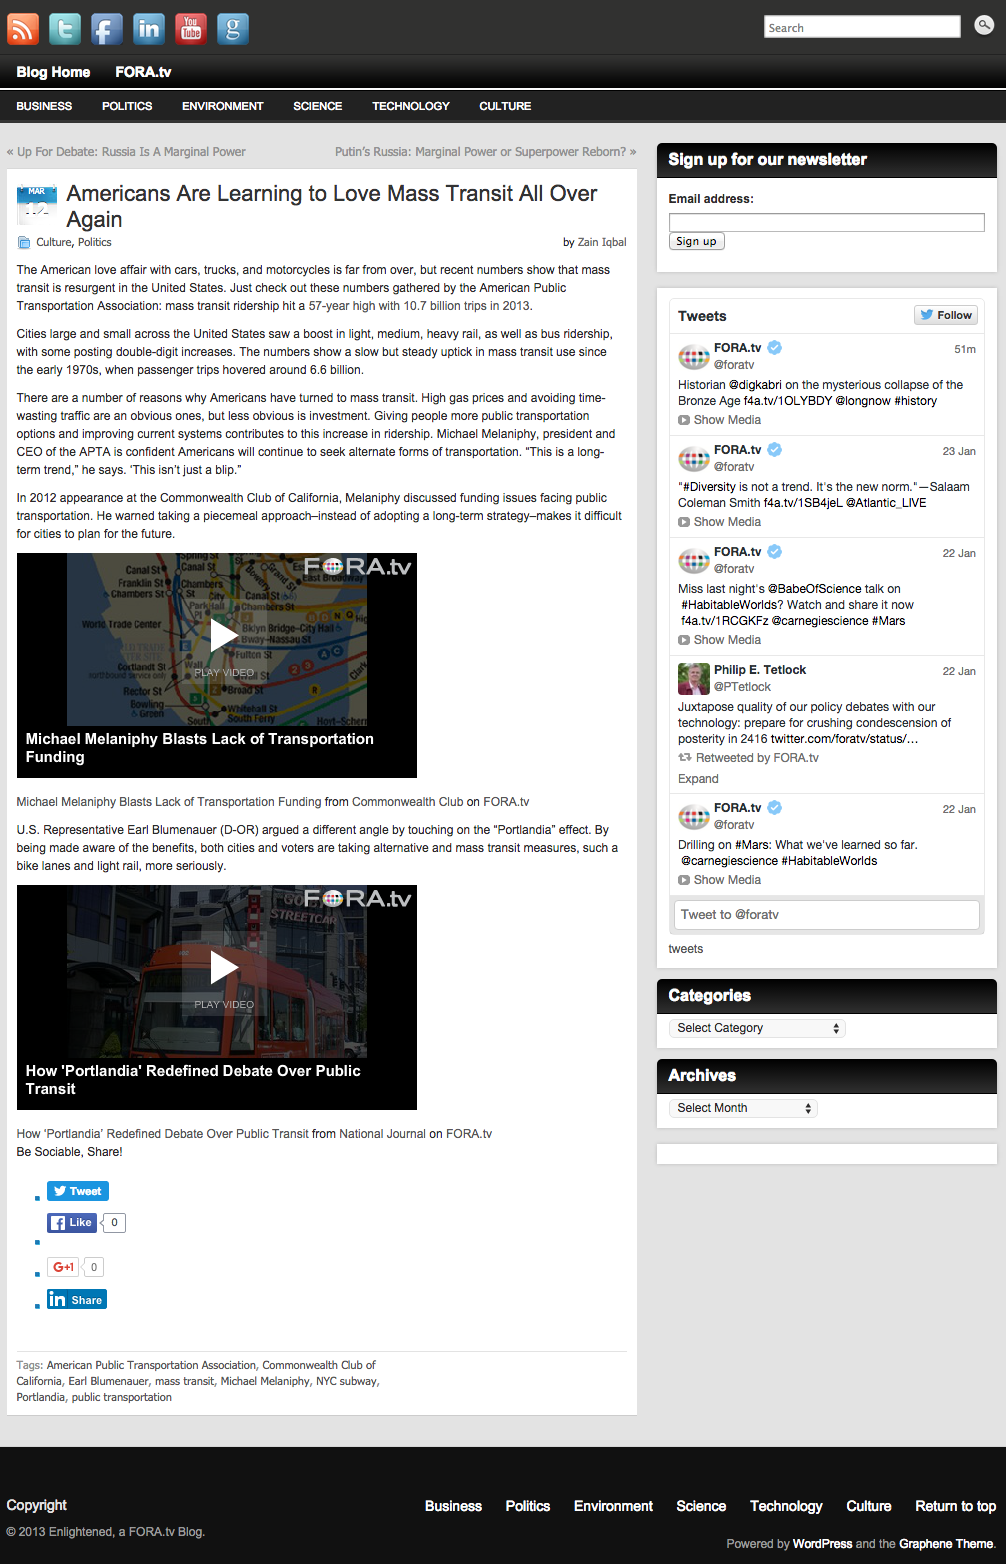 screencapture-enarchive-fora-tv-2014-03-americans-are-learning-to-love-mass-transit-all-over-again.png